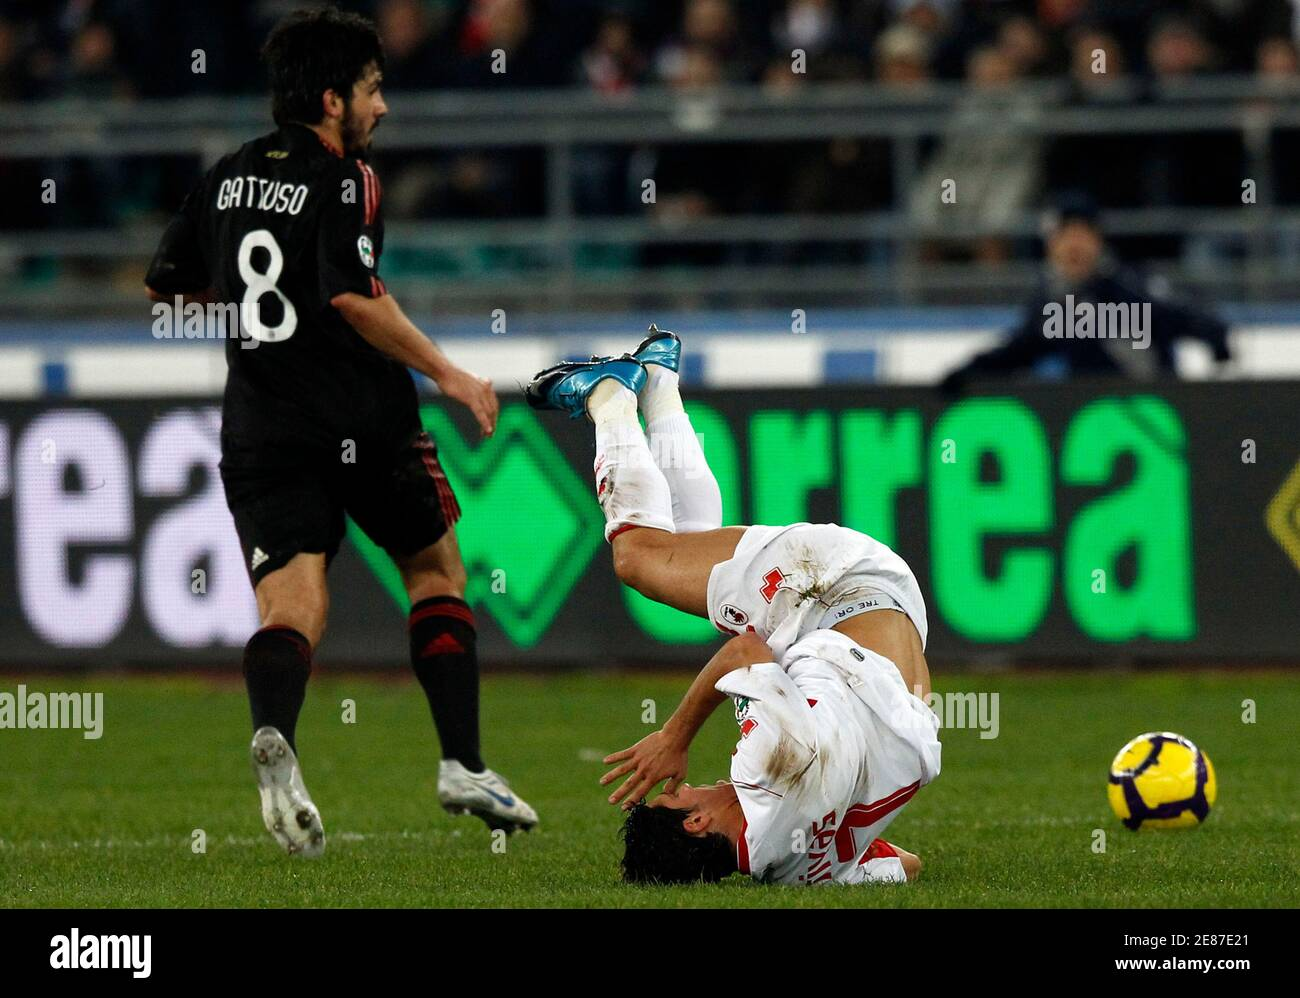 Bari's Emanuel Benito Rivas (R) flies down as  Gennaro Gattuso (C) of AC Milan passes near during their Serie A soccer match at the San Nicola stadium in Bari February 21, 2010.  REUTERS/Alessandro Bianchi   (ITALY - Tags: SPORT SOCCER) Foto de stock